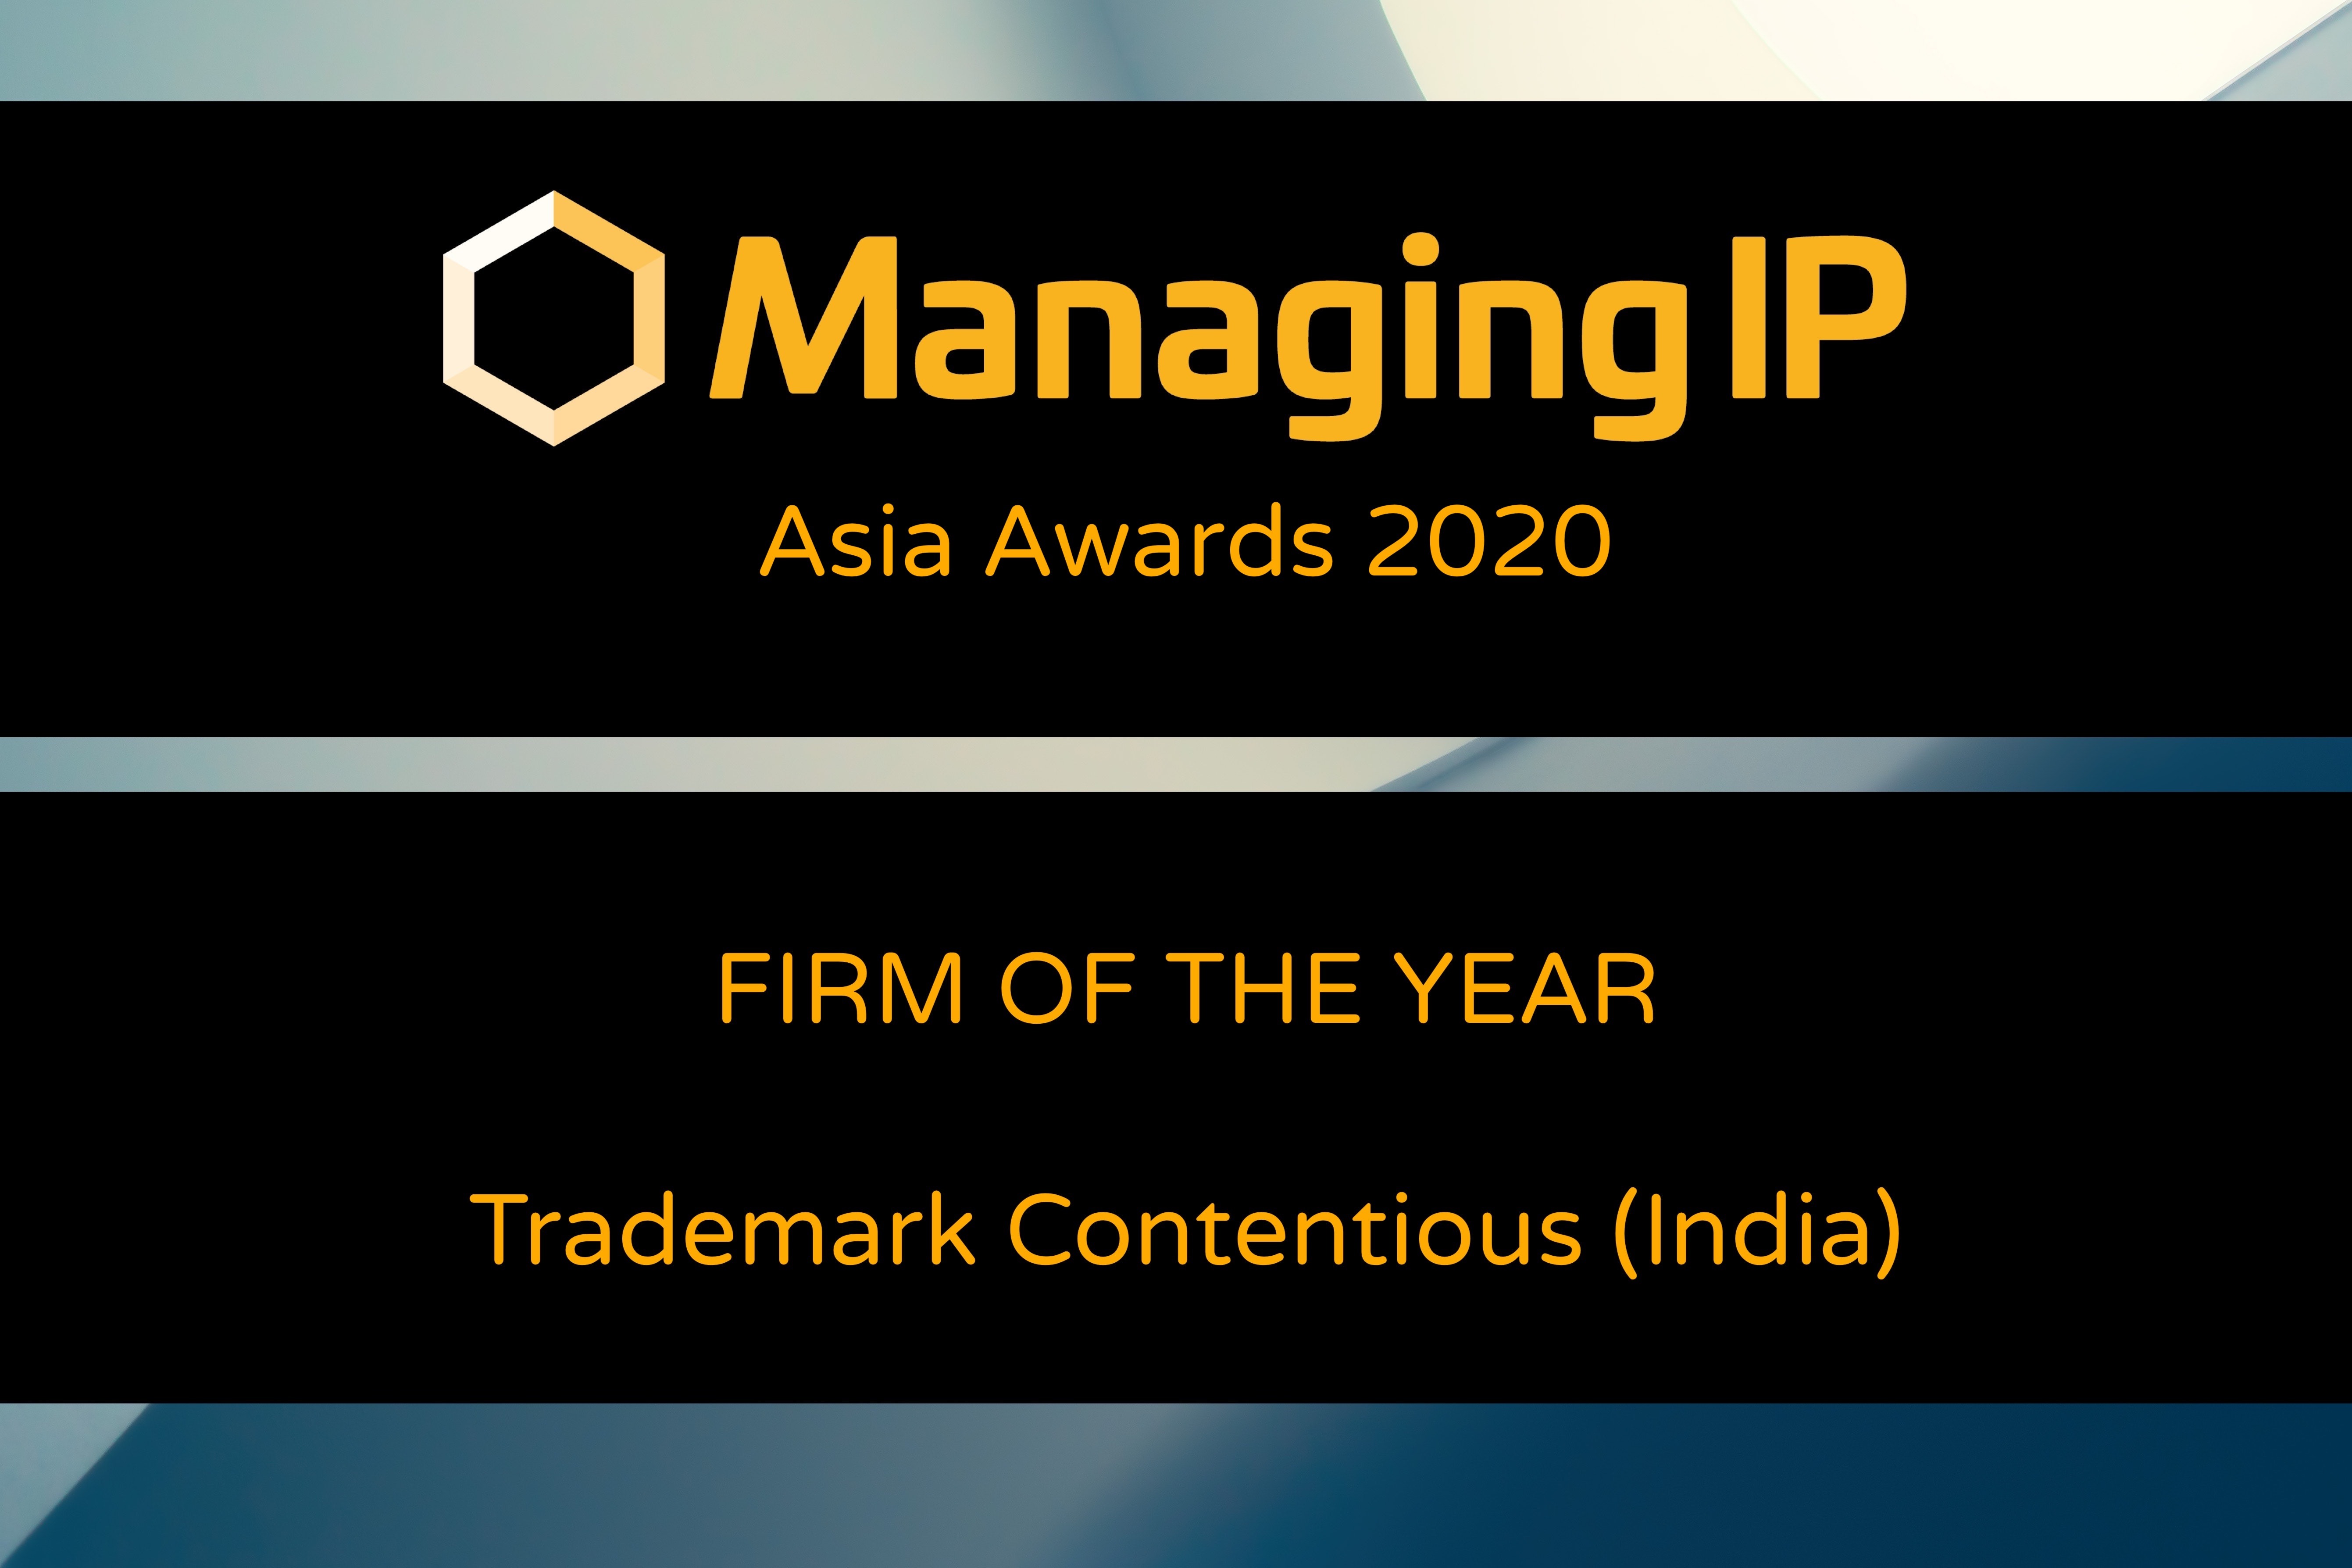 Managing IP's Trademark Contentious Firm of the Year (India)